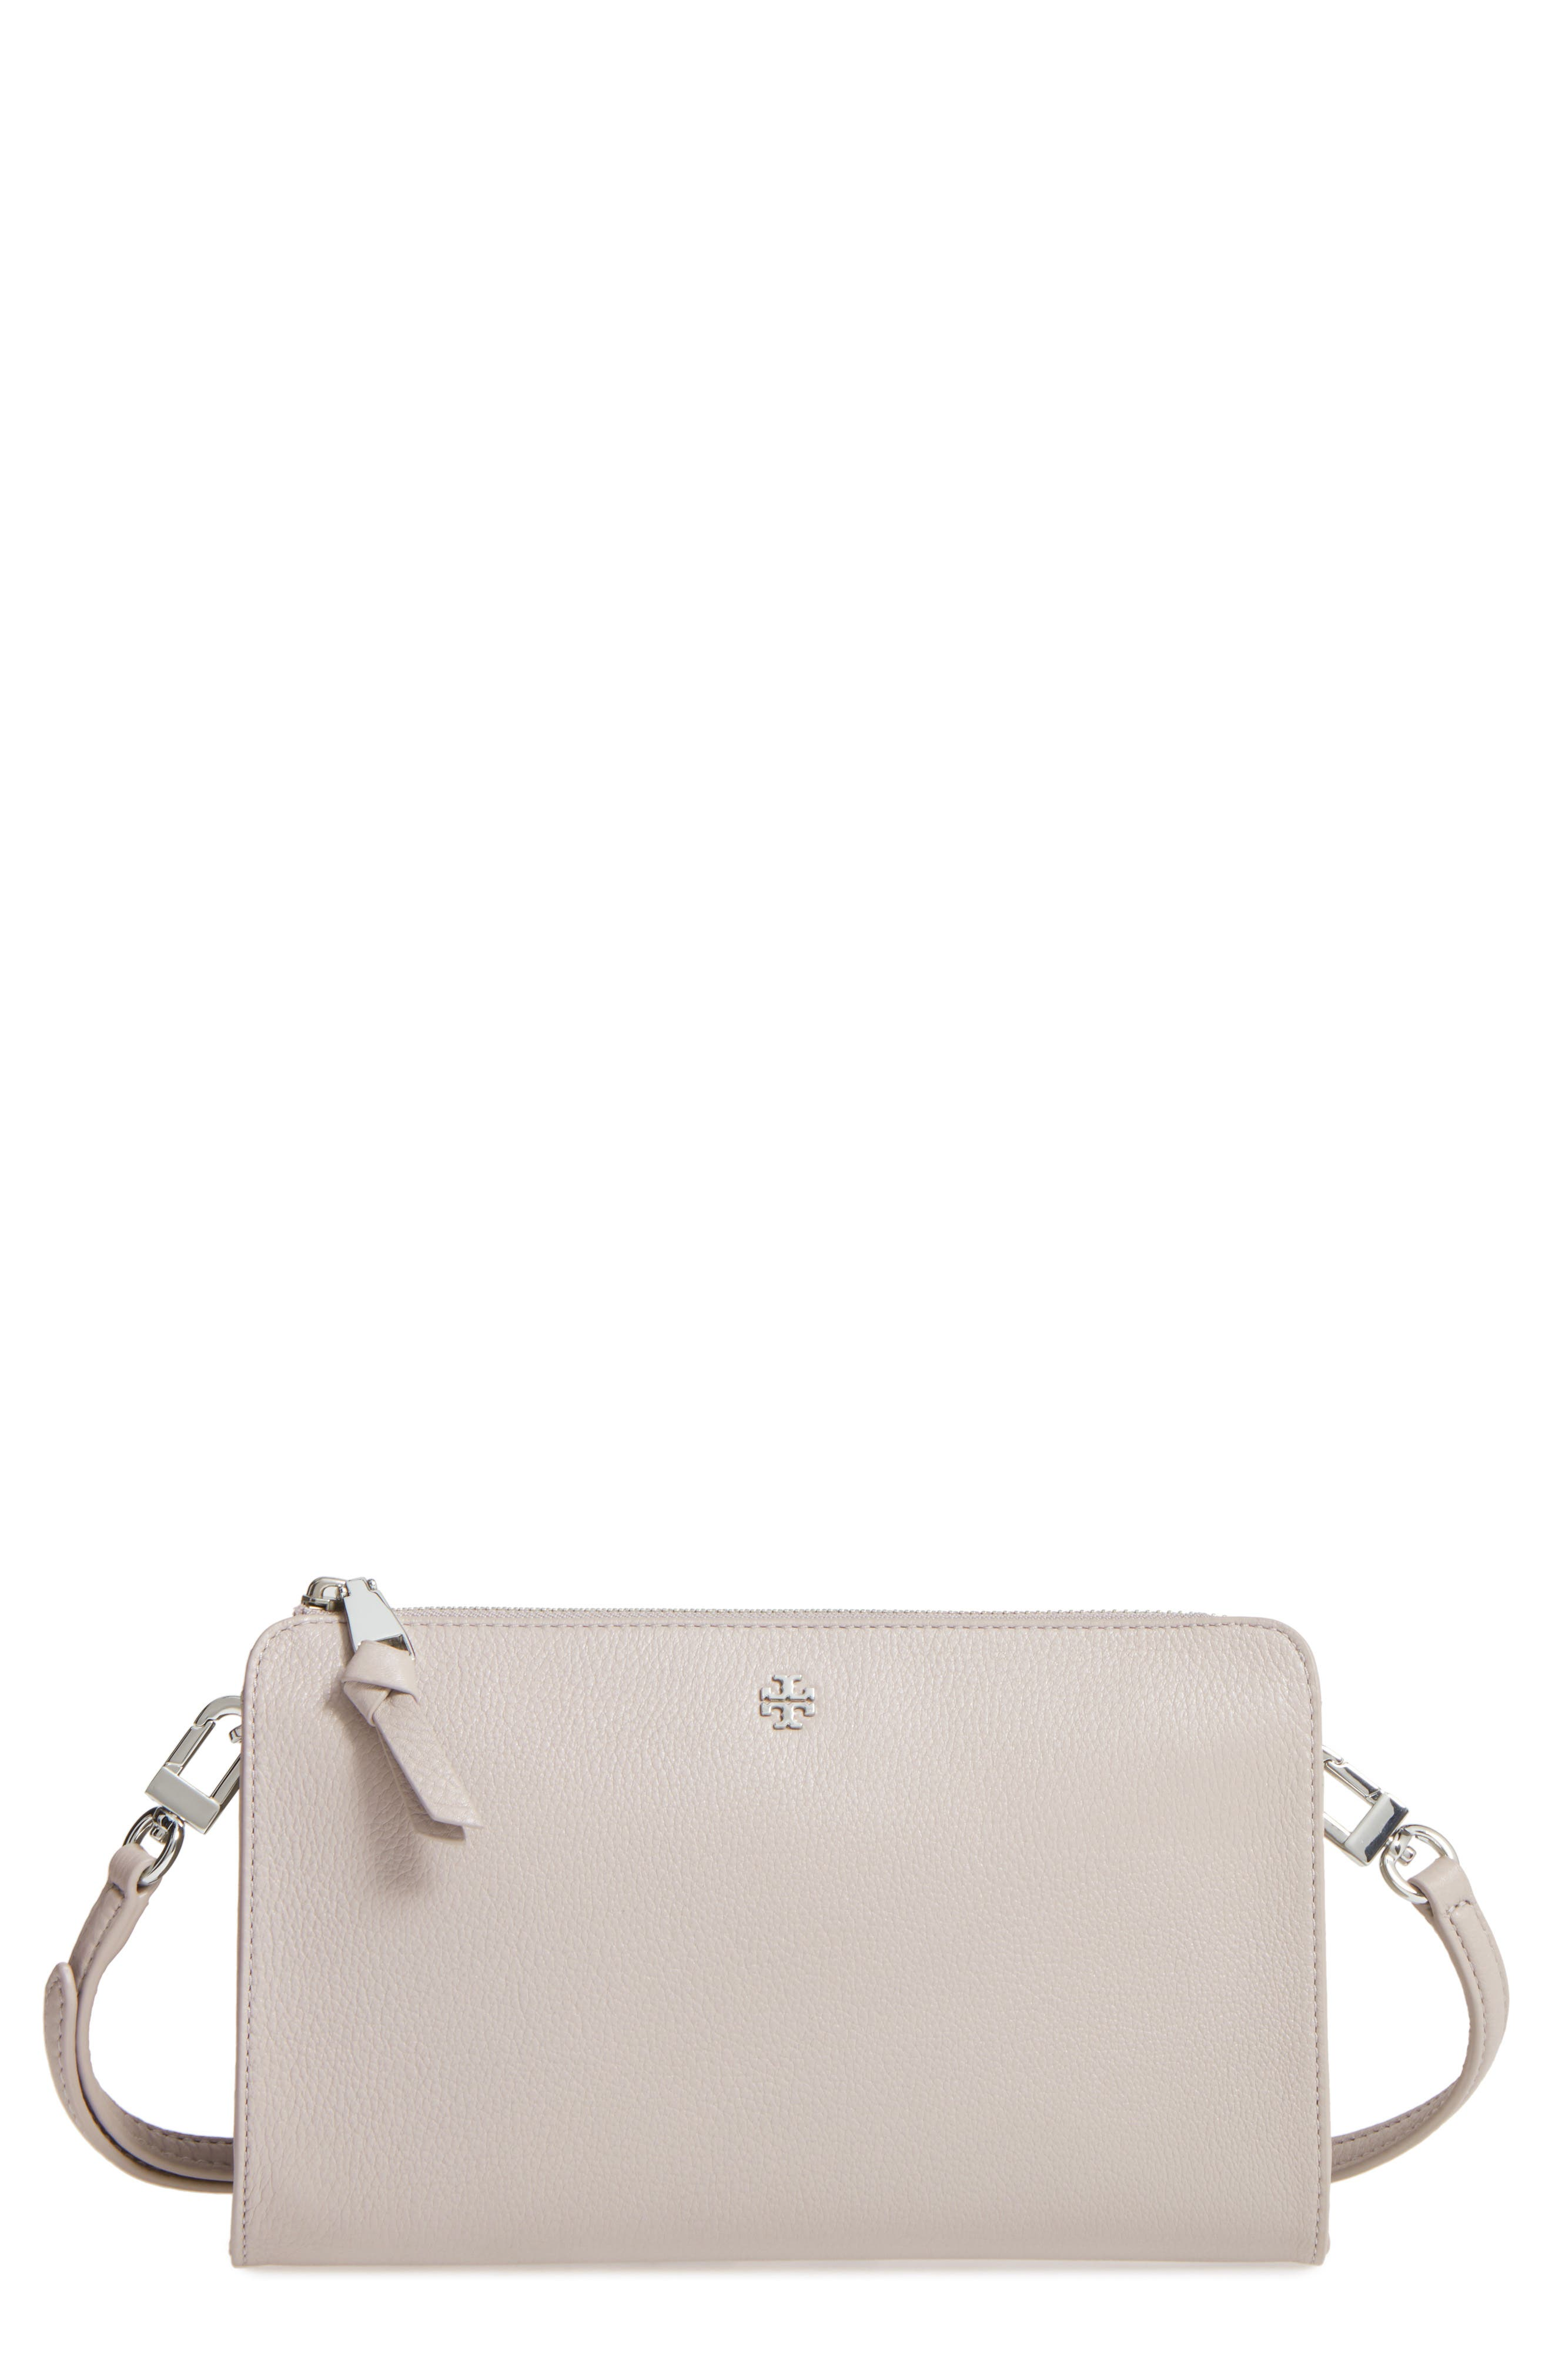 Alternate Image 1 Selected - Tory Burch Robinson Leather Wallet/Crossbody Bag